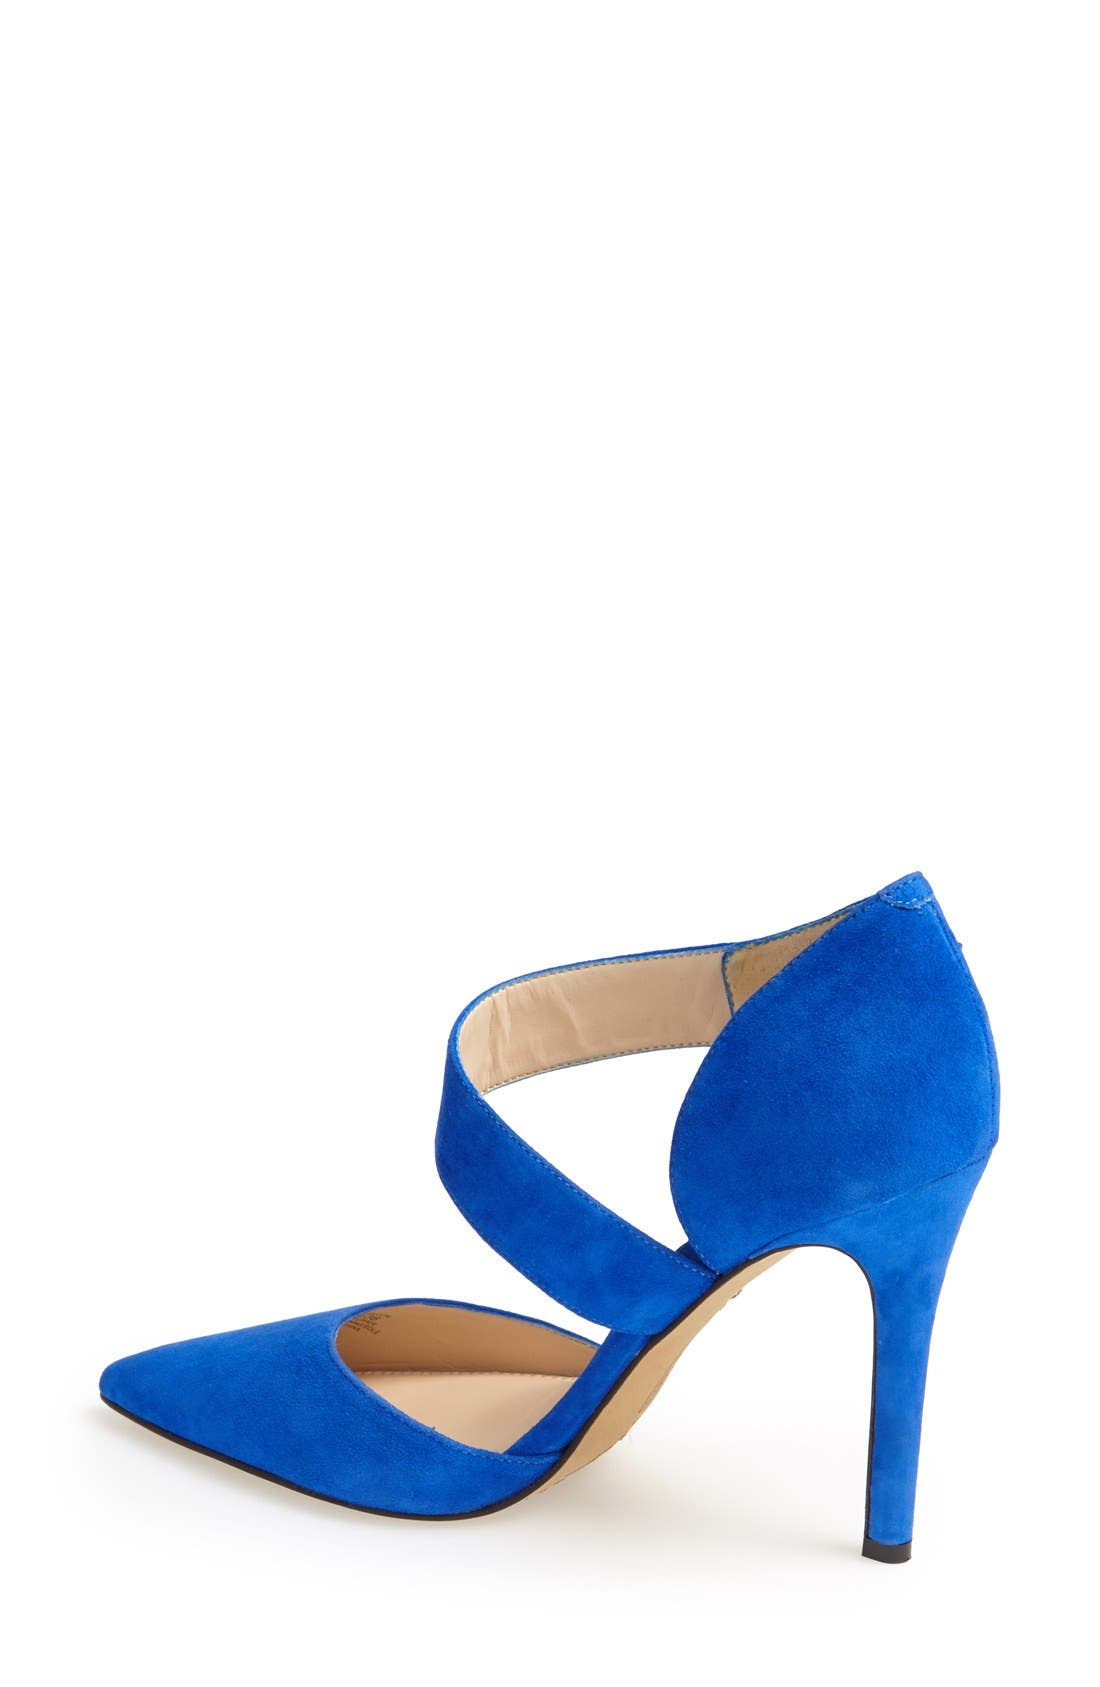 ,                             'Carlotte' Pointy Toe Pump,                             Alternate thumbnail 24, color,                             430